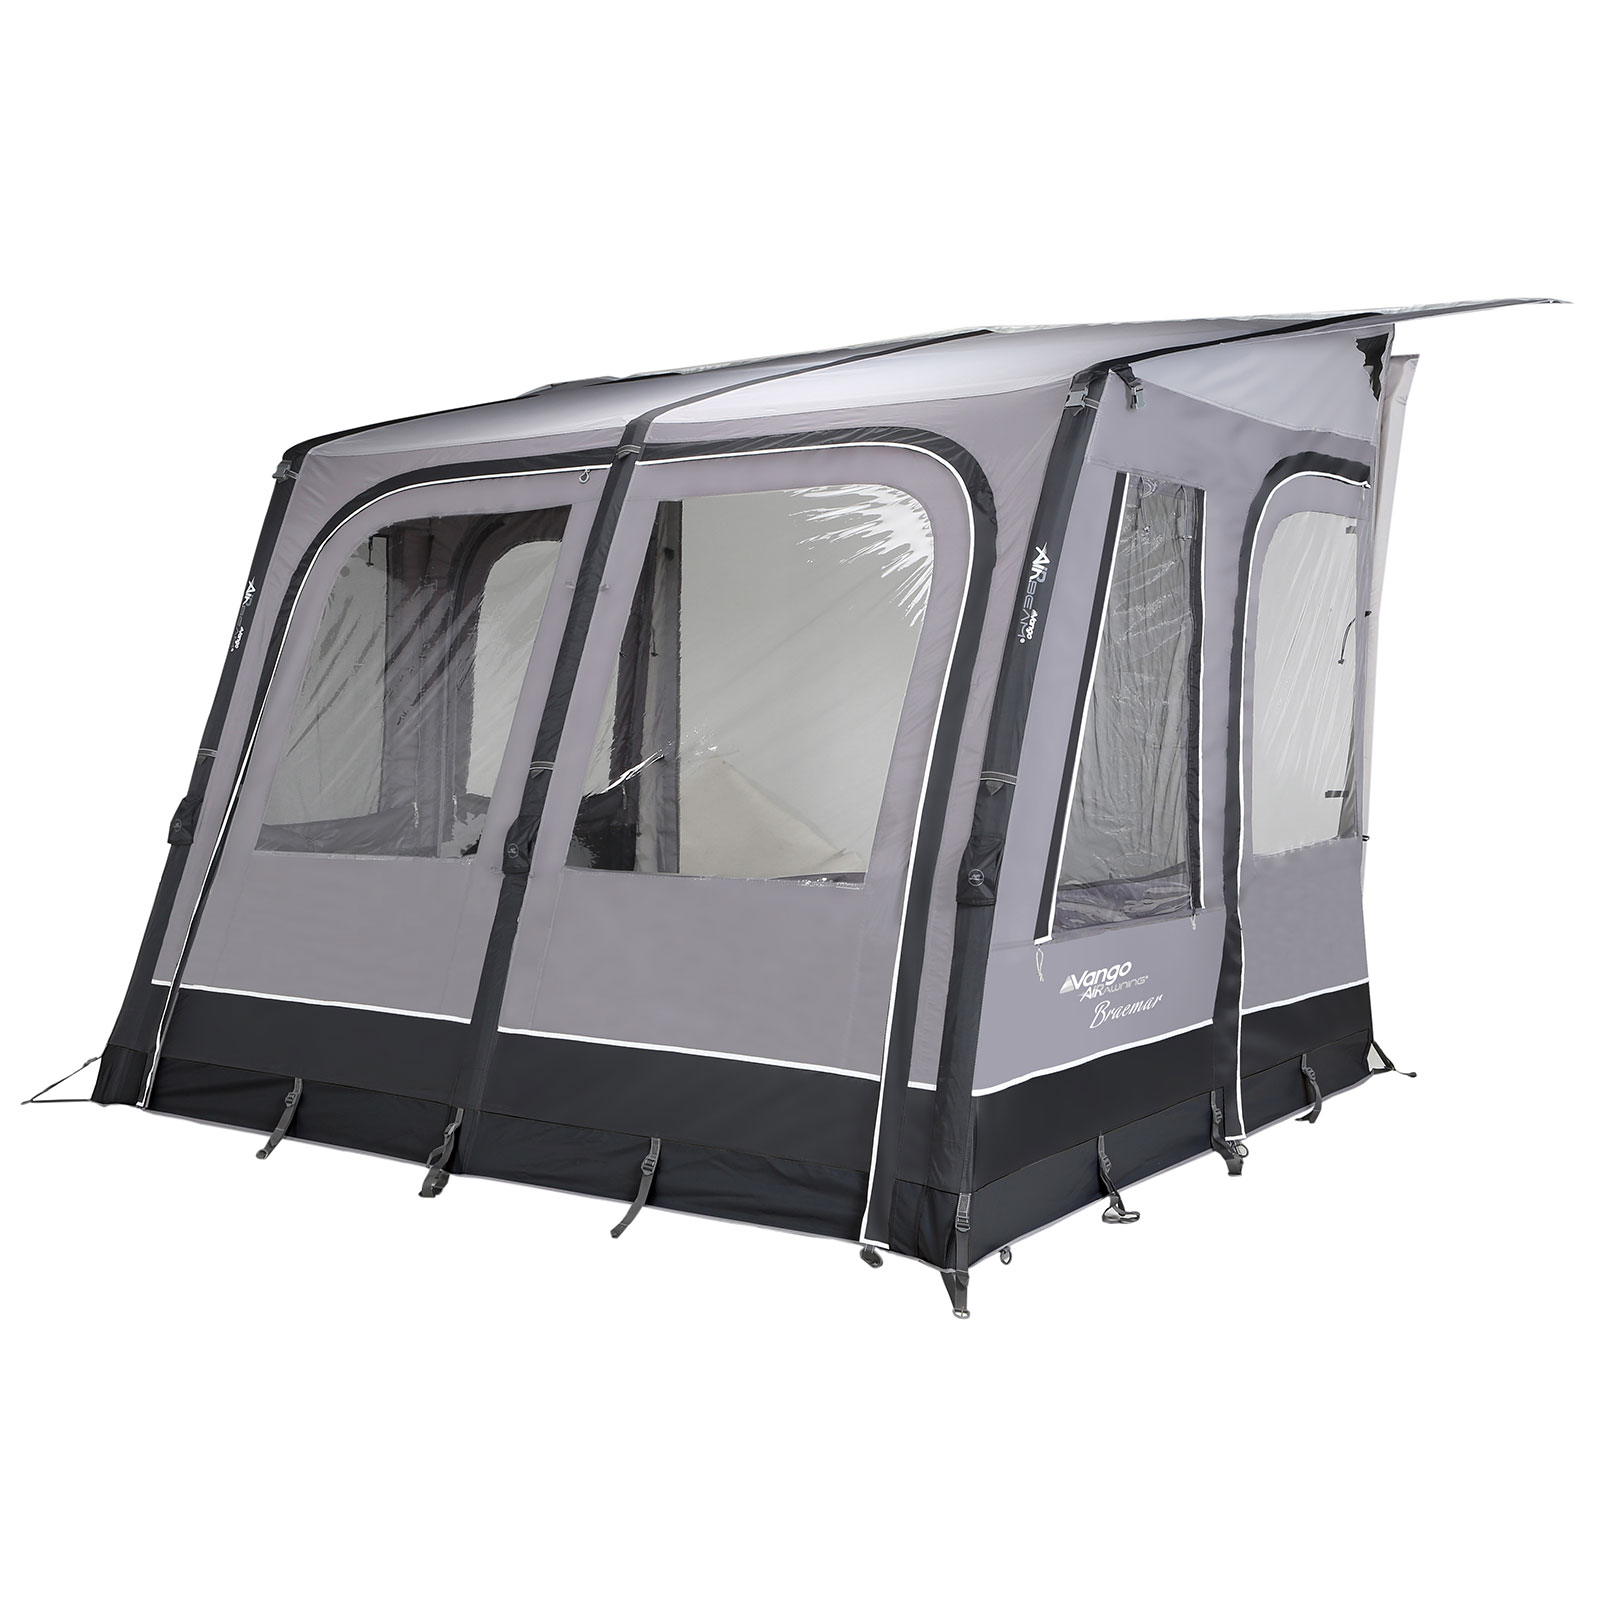 vango braemar 300 wohnwagen vorzelt aufblasbares caravan. Black Bedroom Furniture Sets. Home Design Ideas